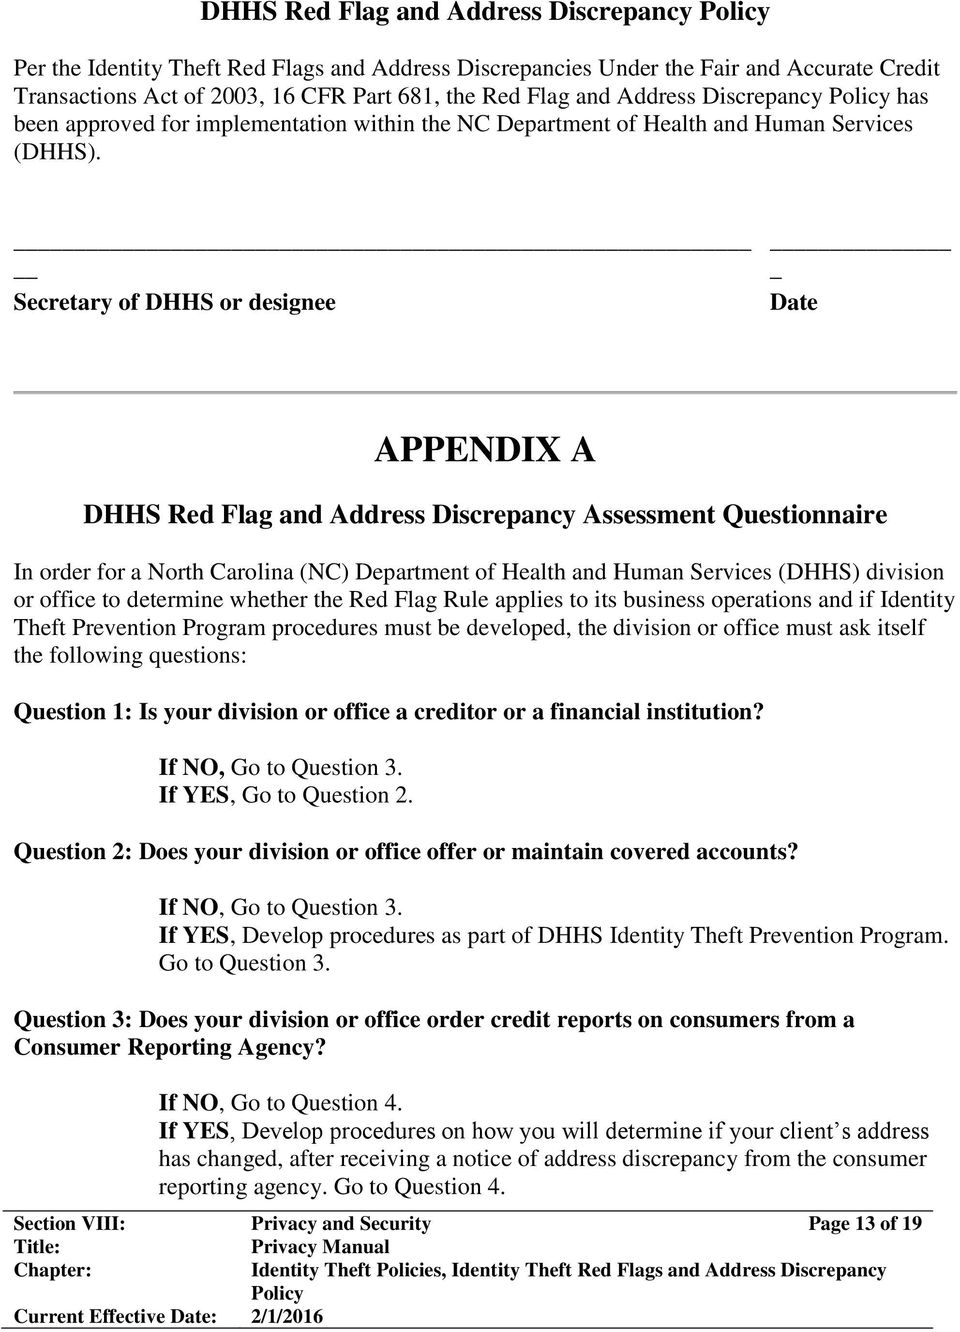 Secretary of DHHS or designee Date APPENDIX A DHHS Red Flag and Address Discrepancy Assessment Questionnaire In order for a North Carolina (NC) Department of Health and Human Services (DHHS) division